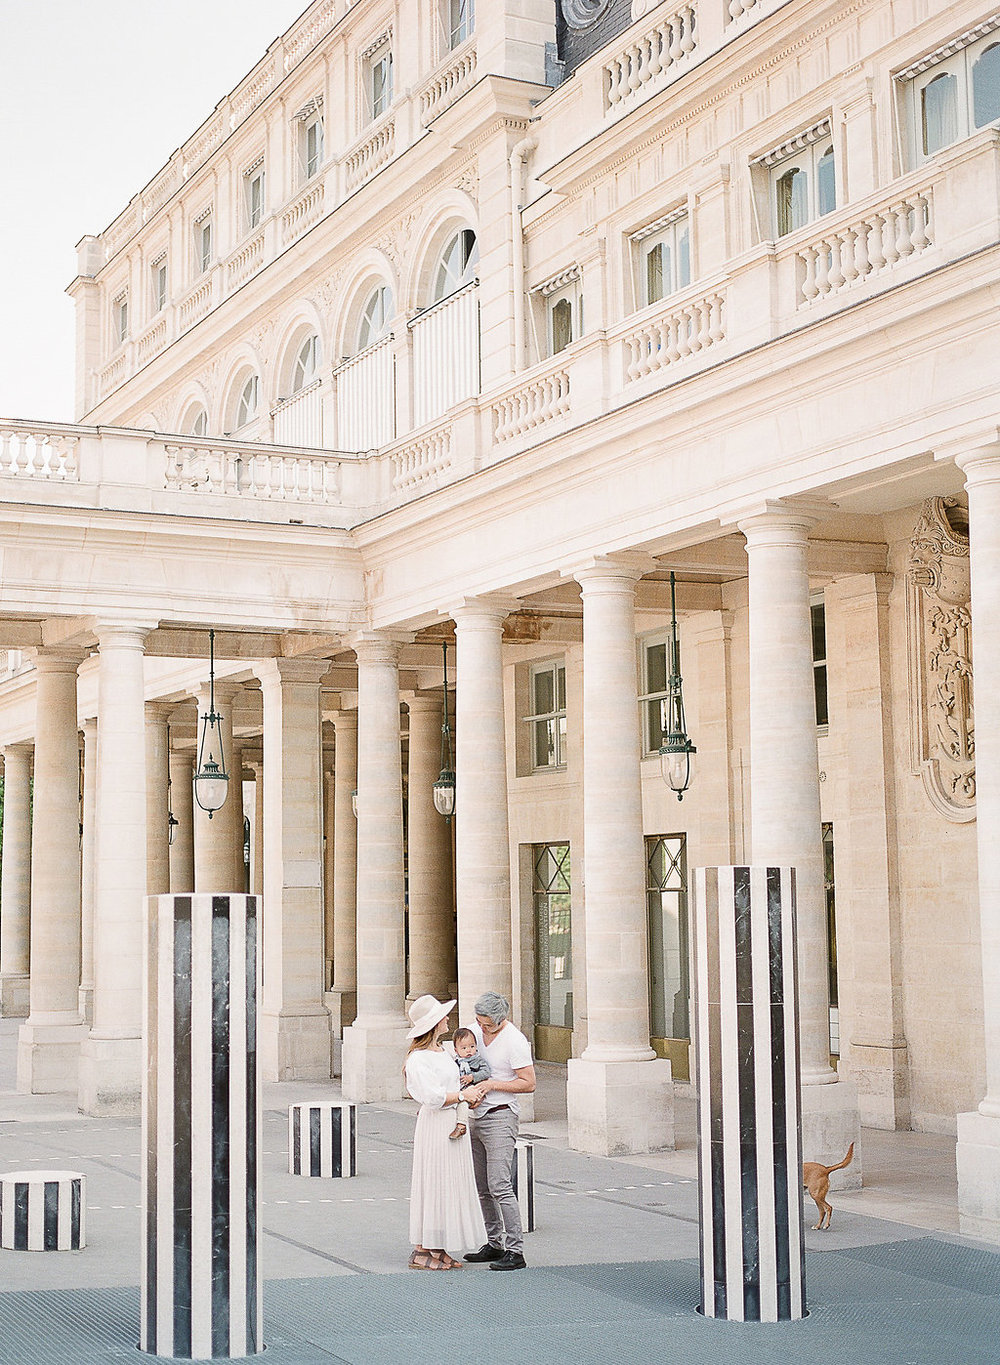 Family photography session in Paris | destination wedding photographer Tanja Kibogo18.JPG